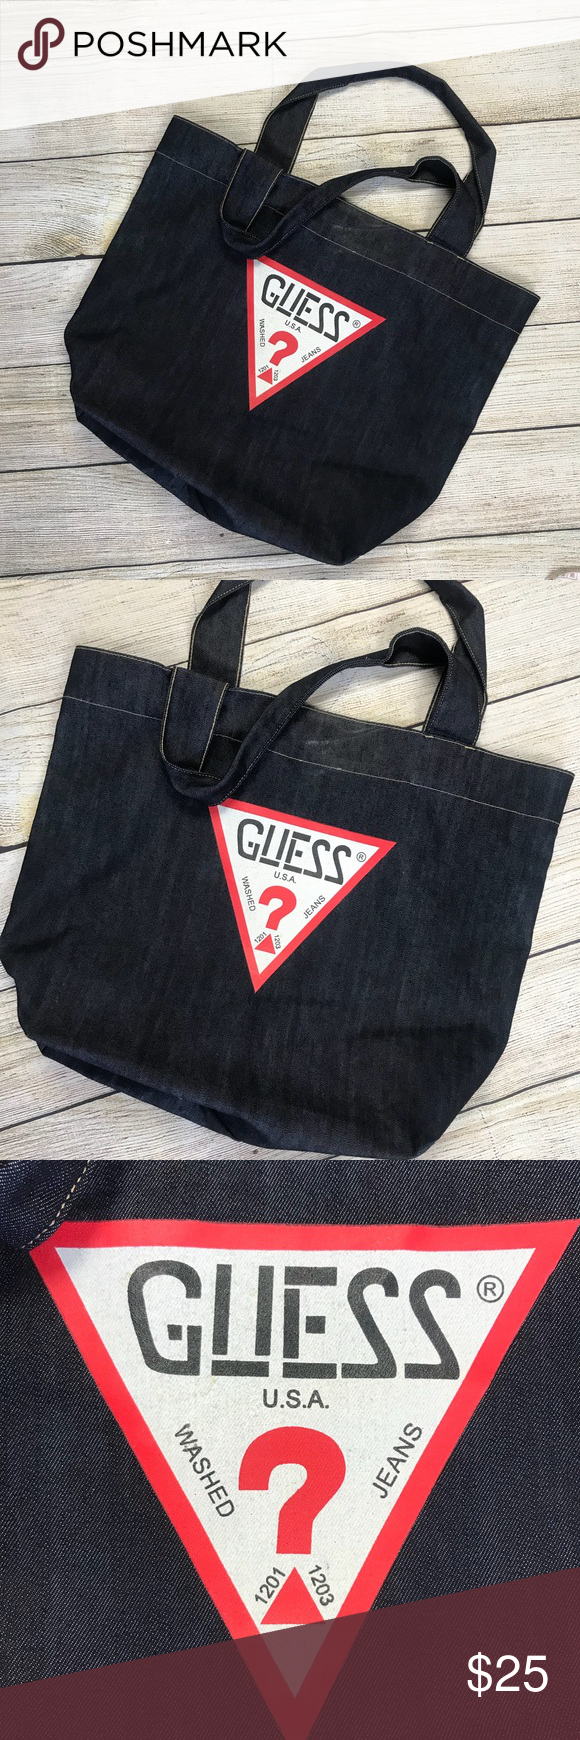 VINTAGE Guess denim jean tote bag purse Excellent condition! Please see the  photos I have attached. If you need measurements feel free to ask! fc2709ad92